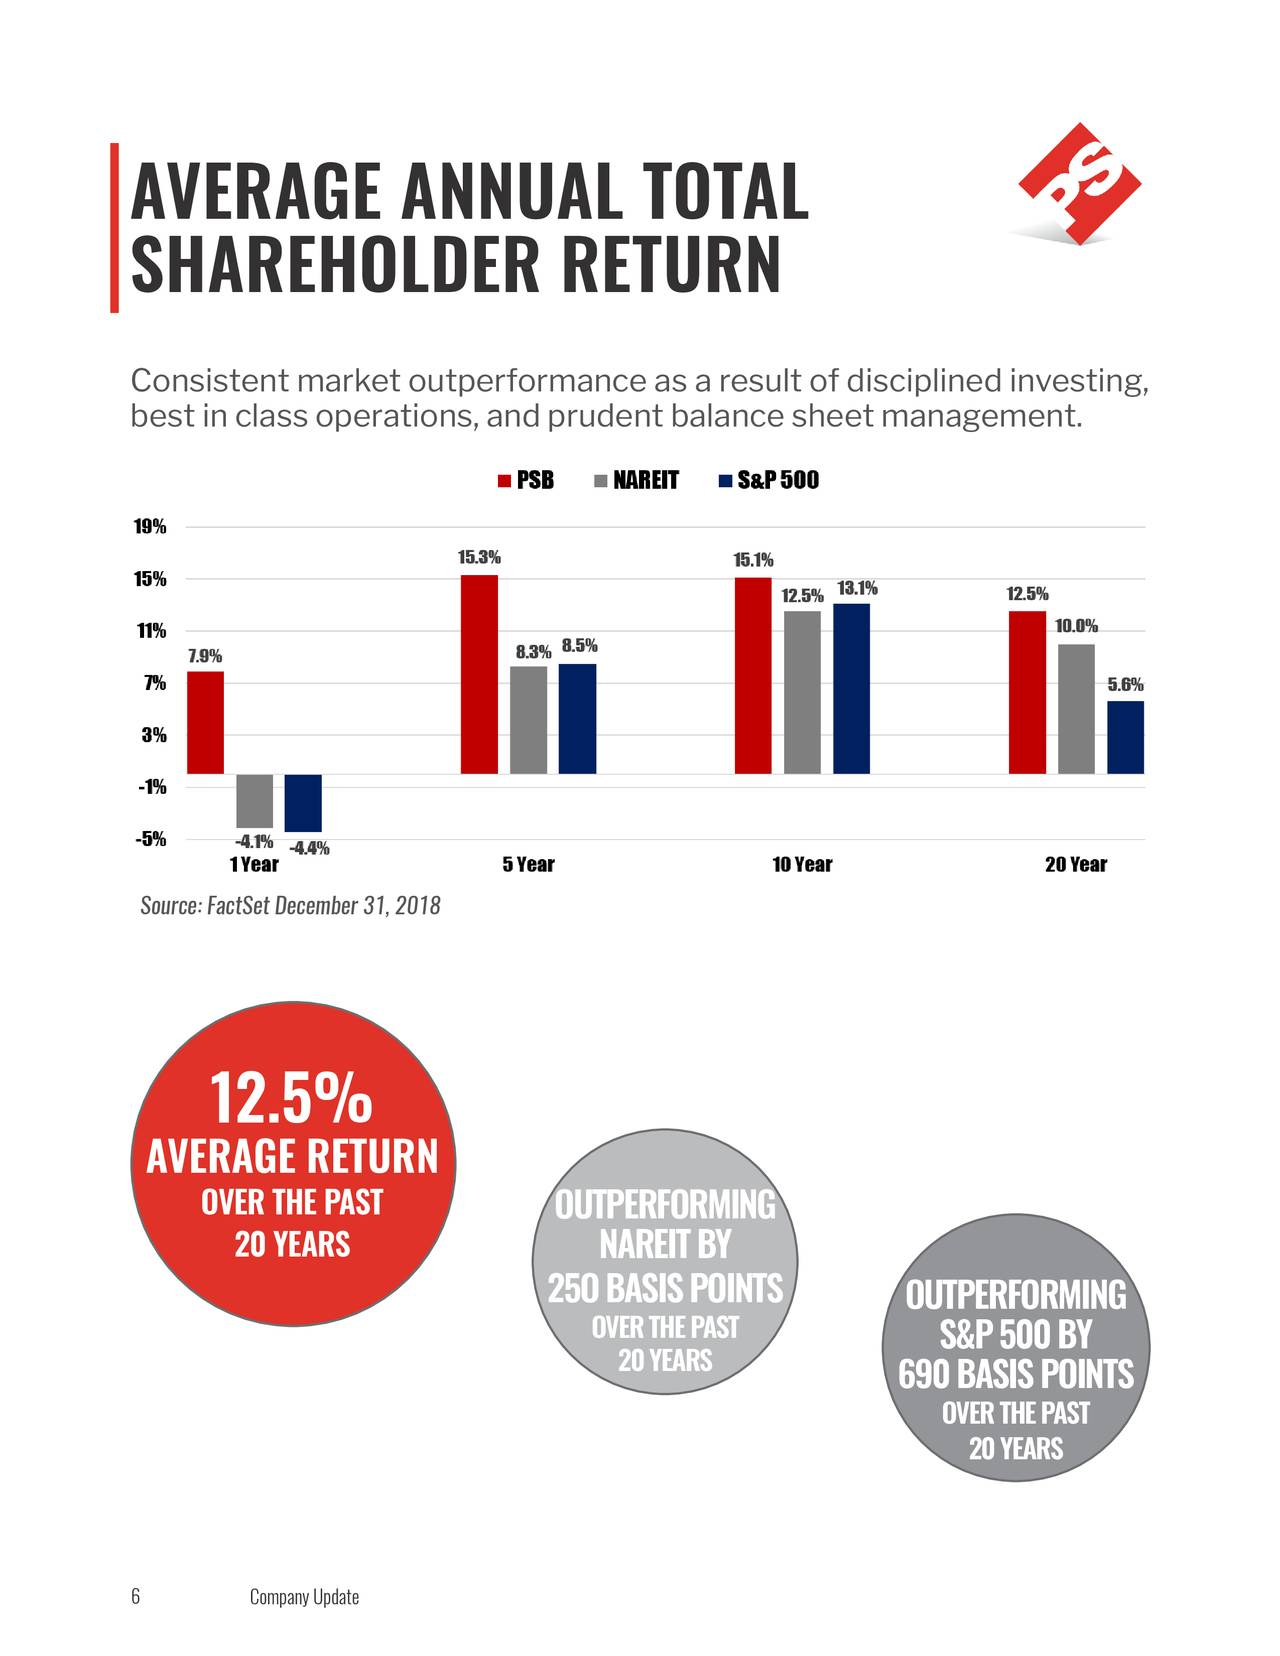 SHAREHOLDER RETURN Consistent market outperformance as a result of disciplined investing, best in class operations, and prudent balance sheet management. Source: FactSet December 31, 2018 12.5% AVERAGE RETURN OVER THE PAST OUTPERFORMING 20 YEARS NAREIT BY 25O BASIS POINTS OUTPERFORMING OVER THE PAST S&P 500 BY 20 YEARS 690 BASIS POINTS OVER THE PAST 20 YEARS 6 Company Update